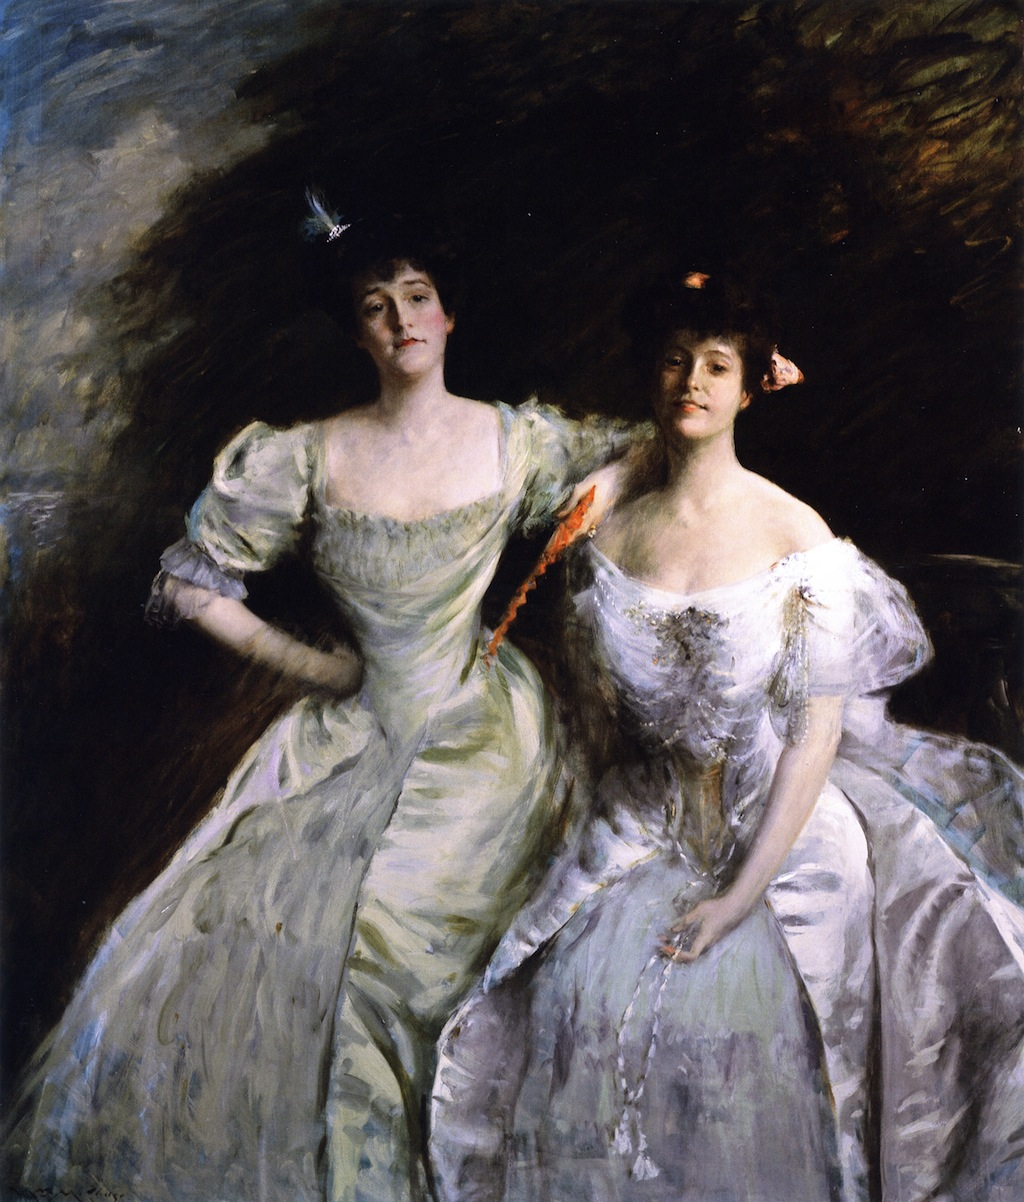 The Sisters (also known as The Sisters - Mrs. Sullivan and Mrs. Oskar LIvingston; The Sisters - Mrs. Oskar Livingston and Mrs. James Francis Sullivan) by William Merritt Chase, 1905